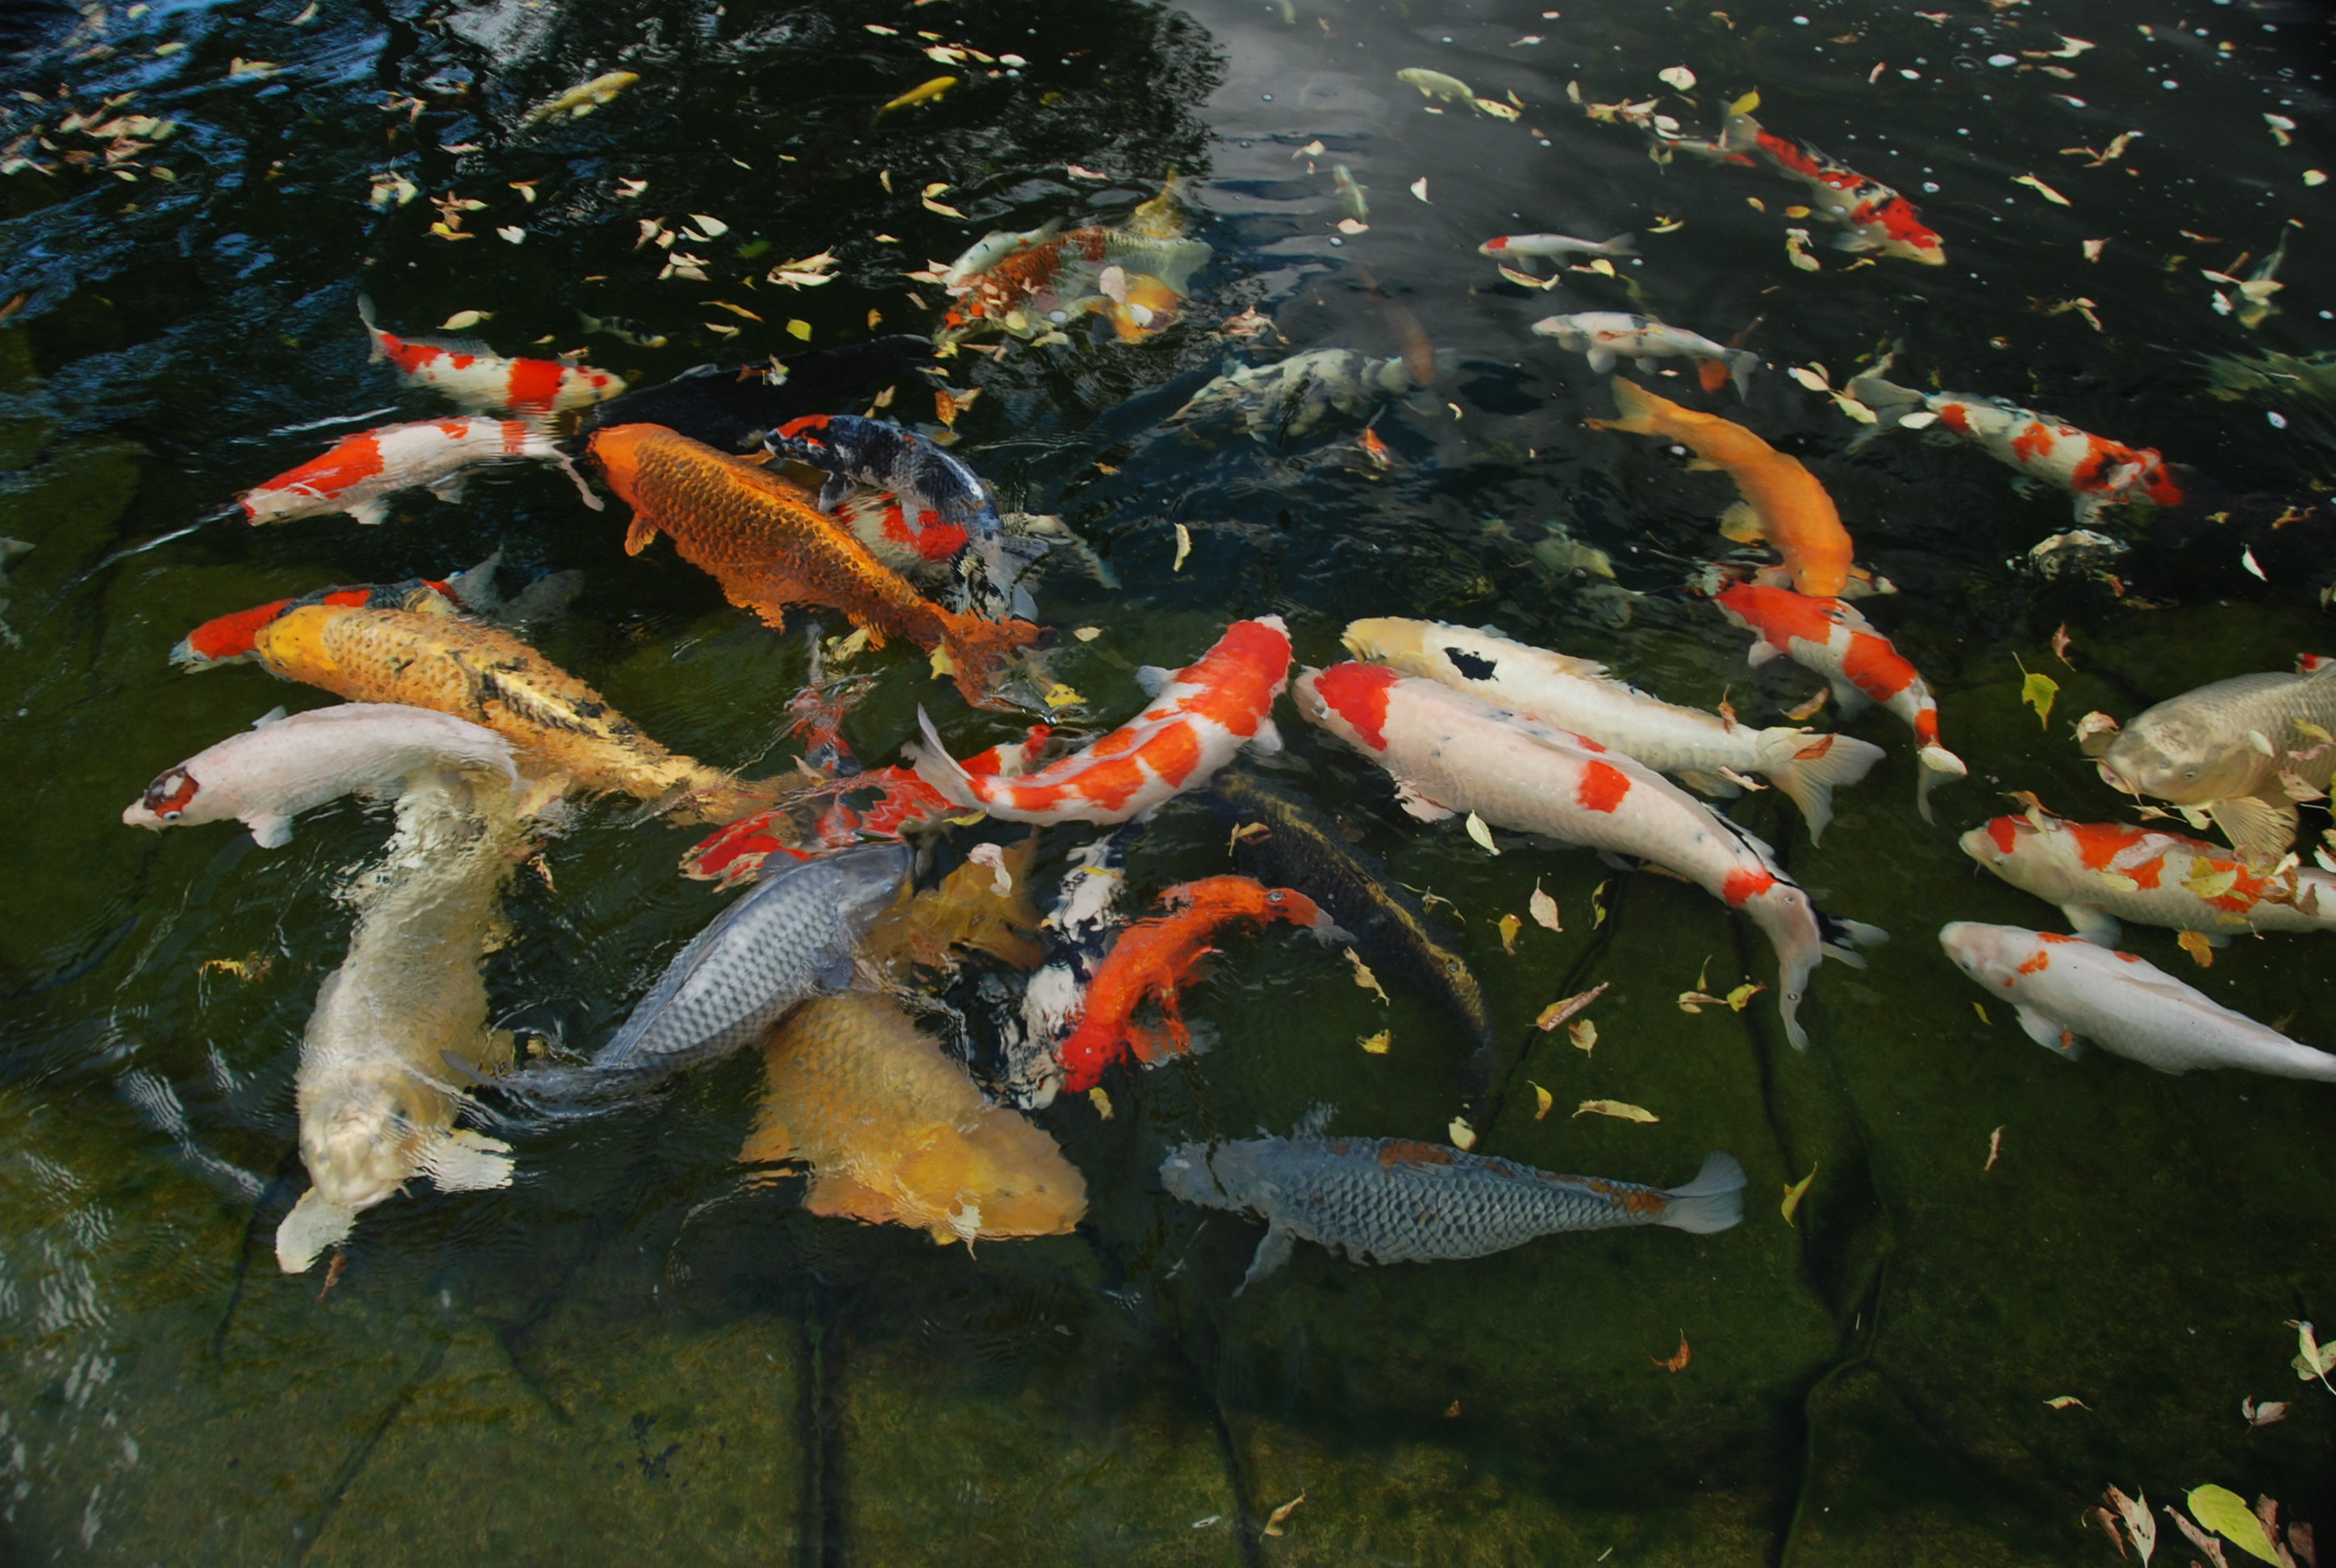 Koi acres imported japanese koi online shopping for koi for Purchase koi fish